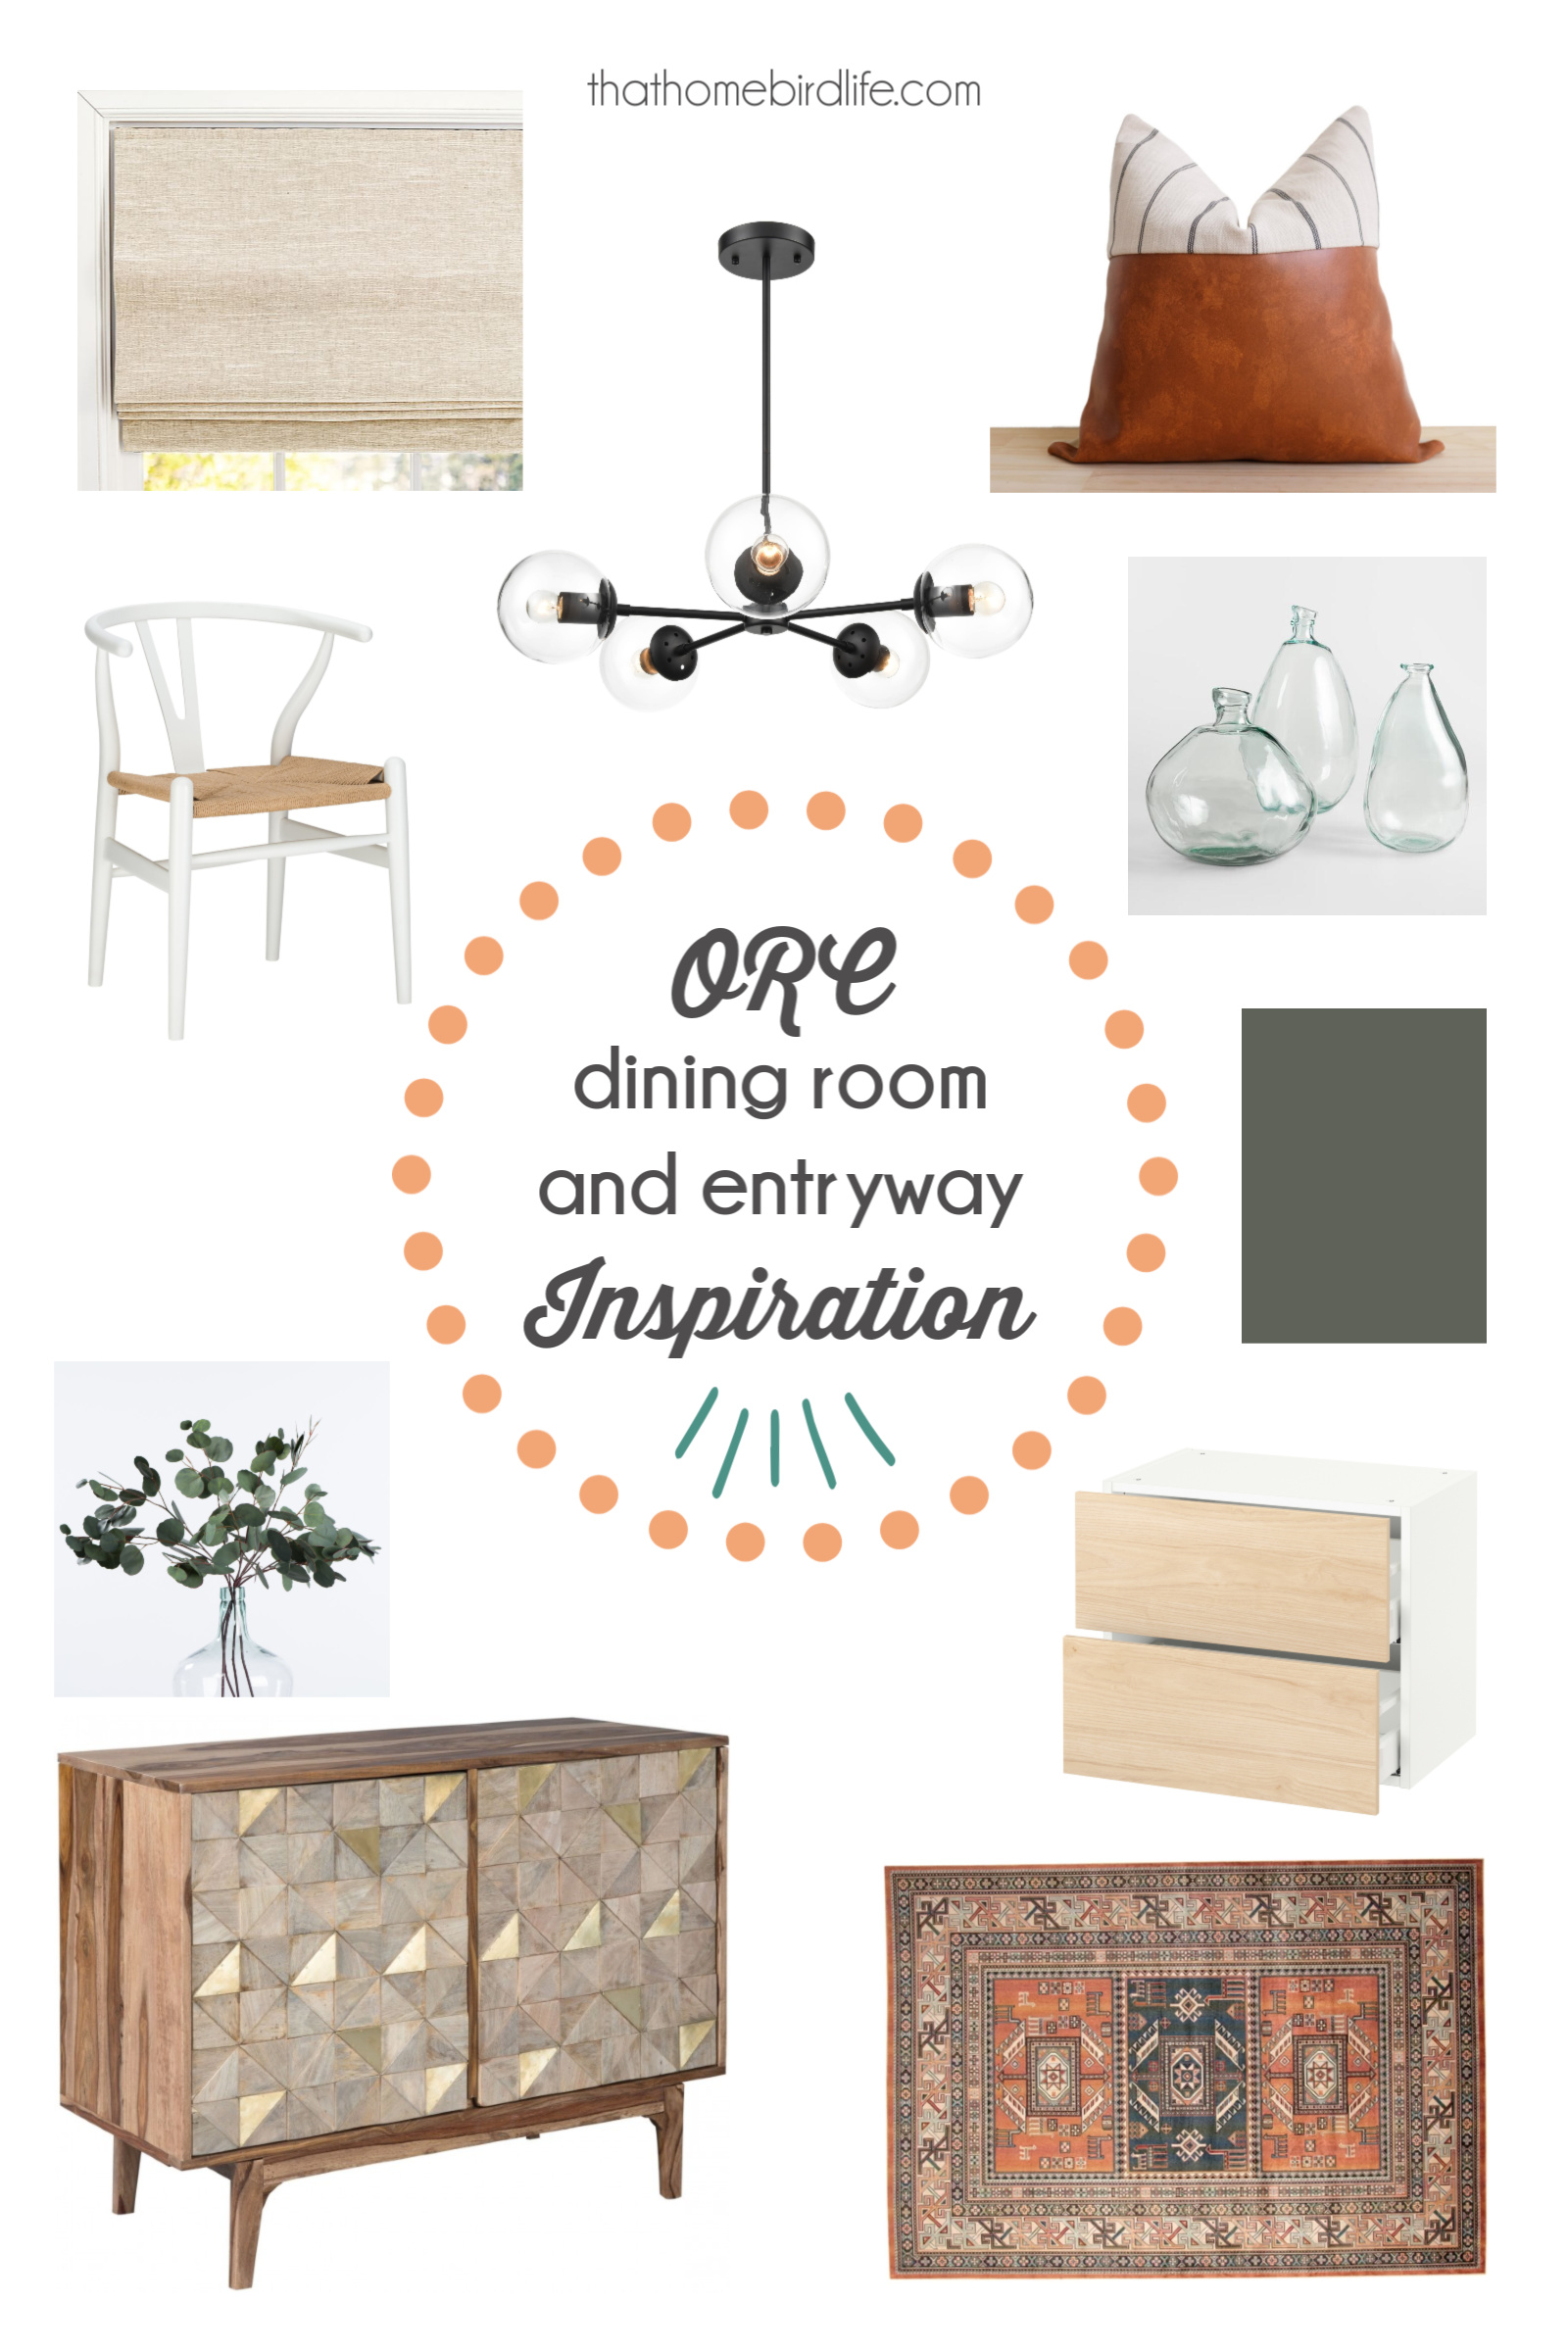 mood board for a dining room and entryway